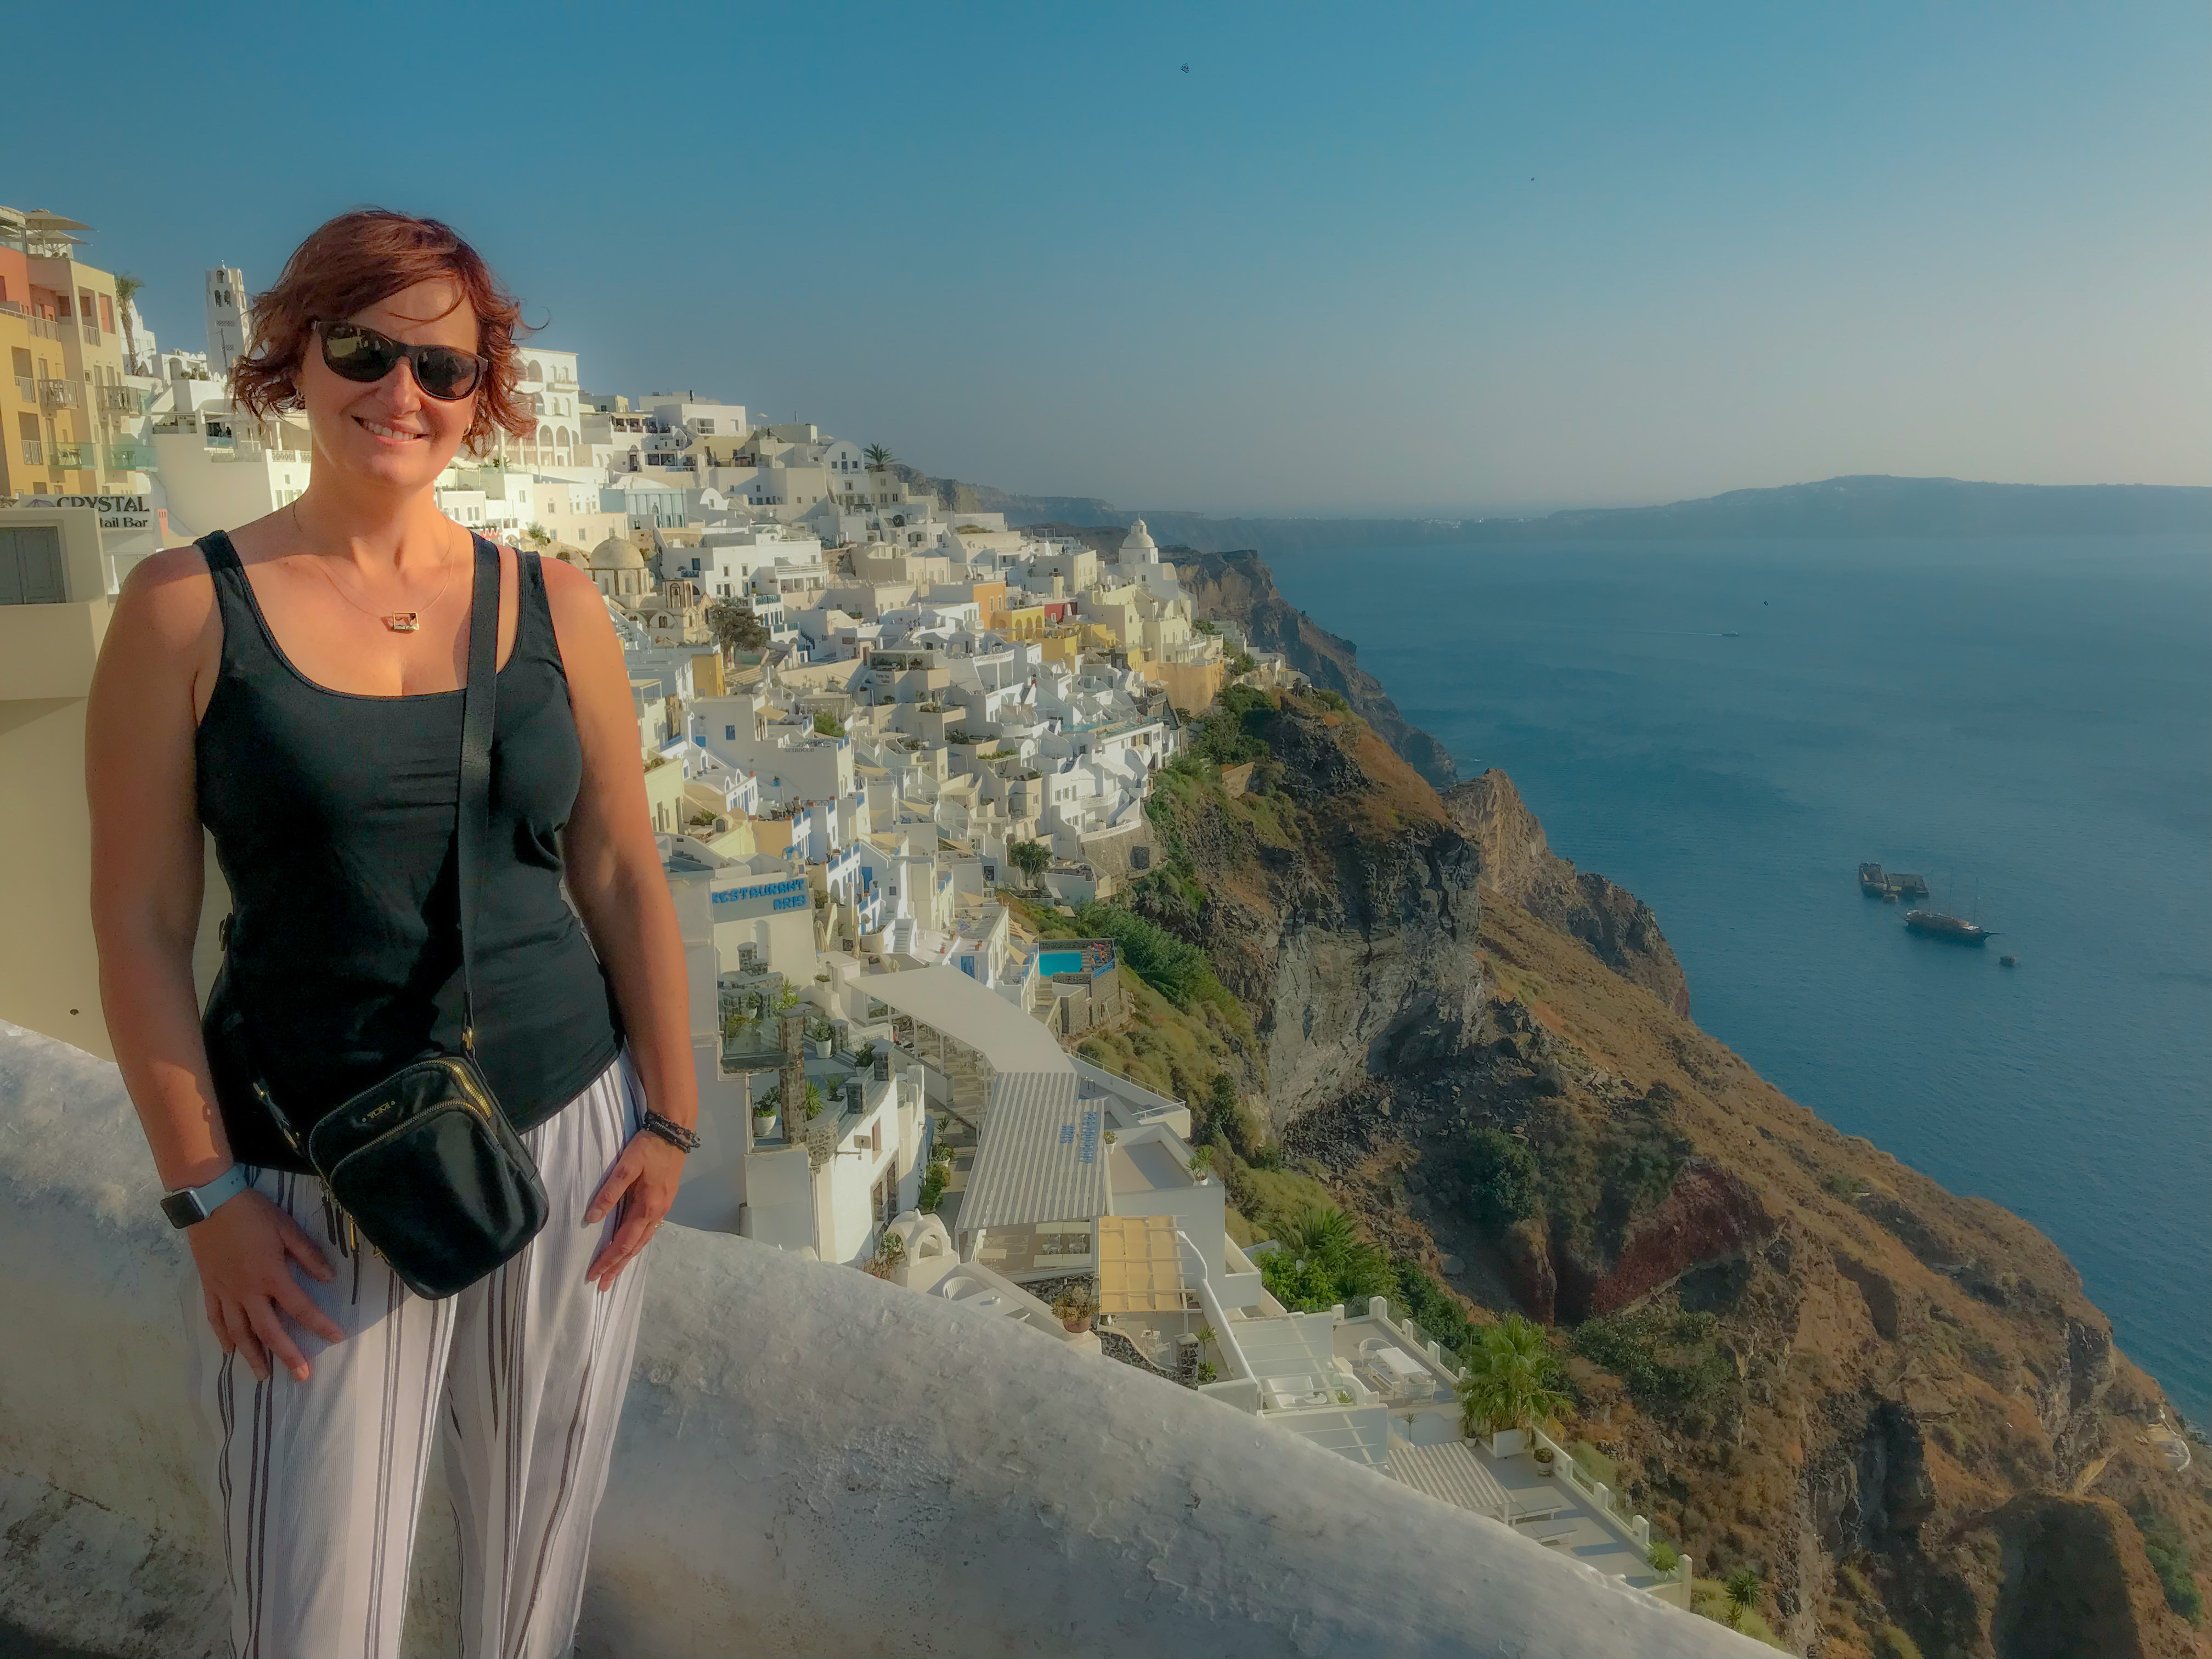 Tamara standing with a view of the whitewashed buildings on the cliffs of Santorini.